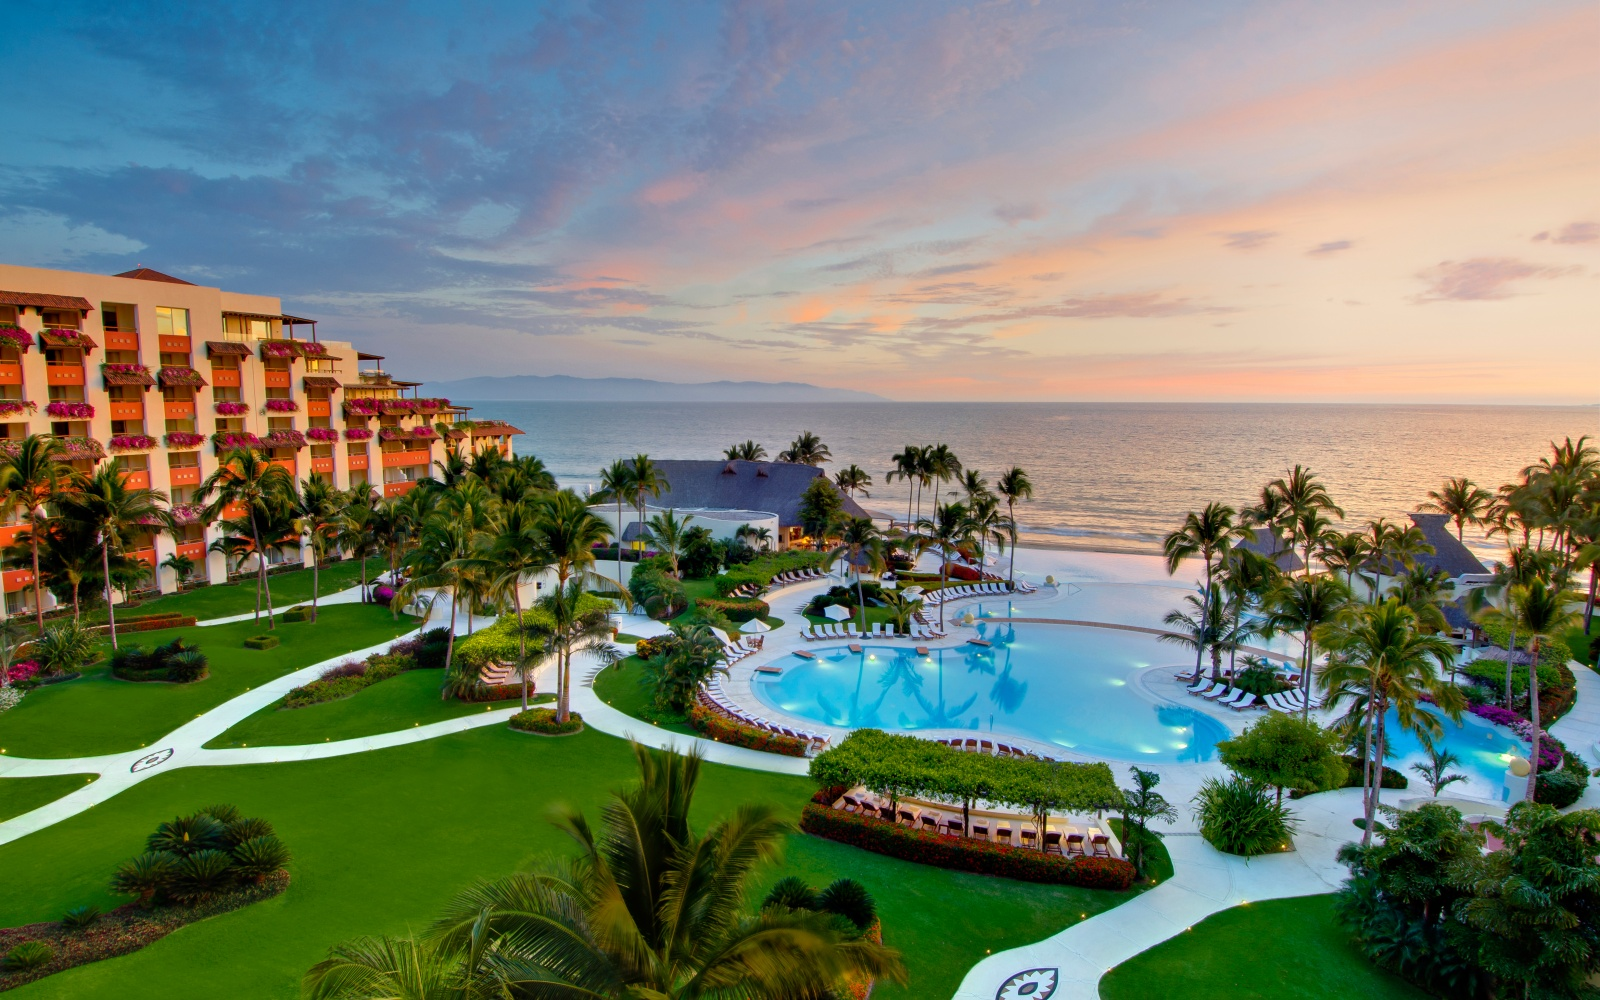 pool at Grand Velas Riviera Nayarit beach resort, Nuevo Vallarta MX